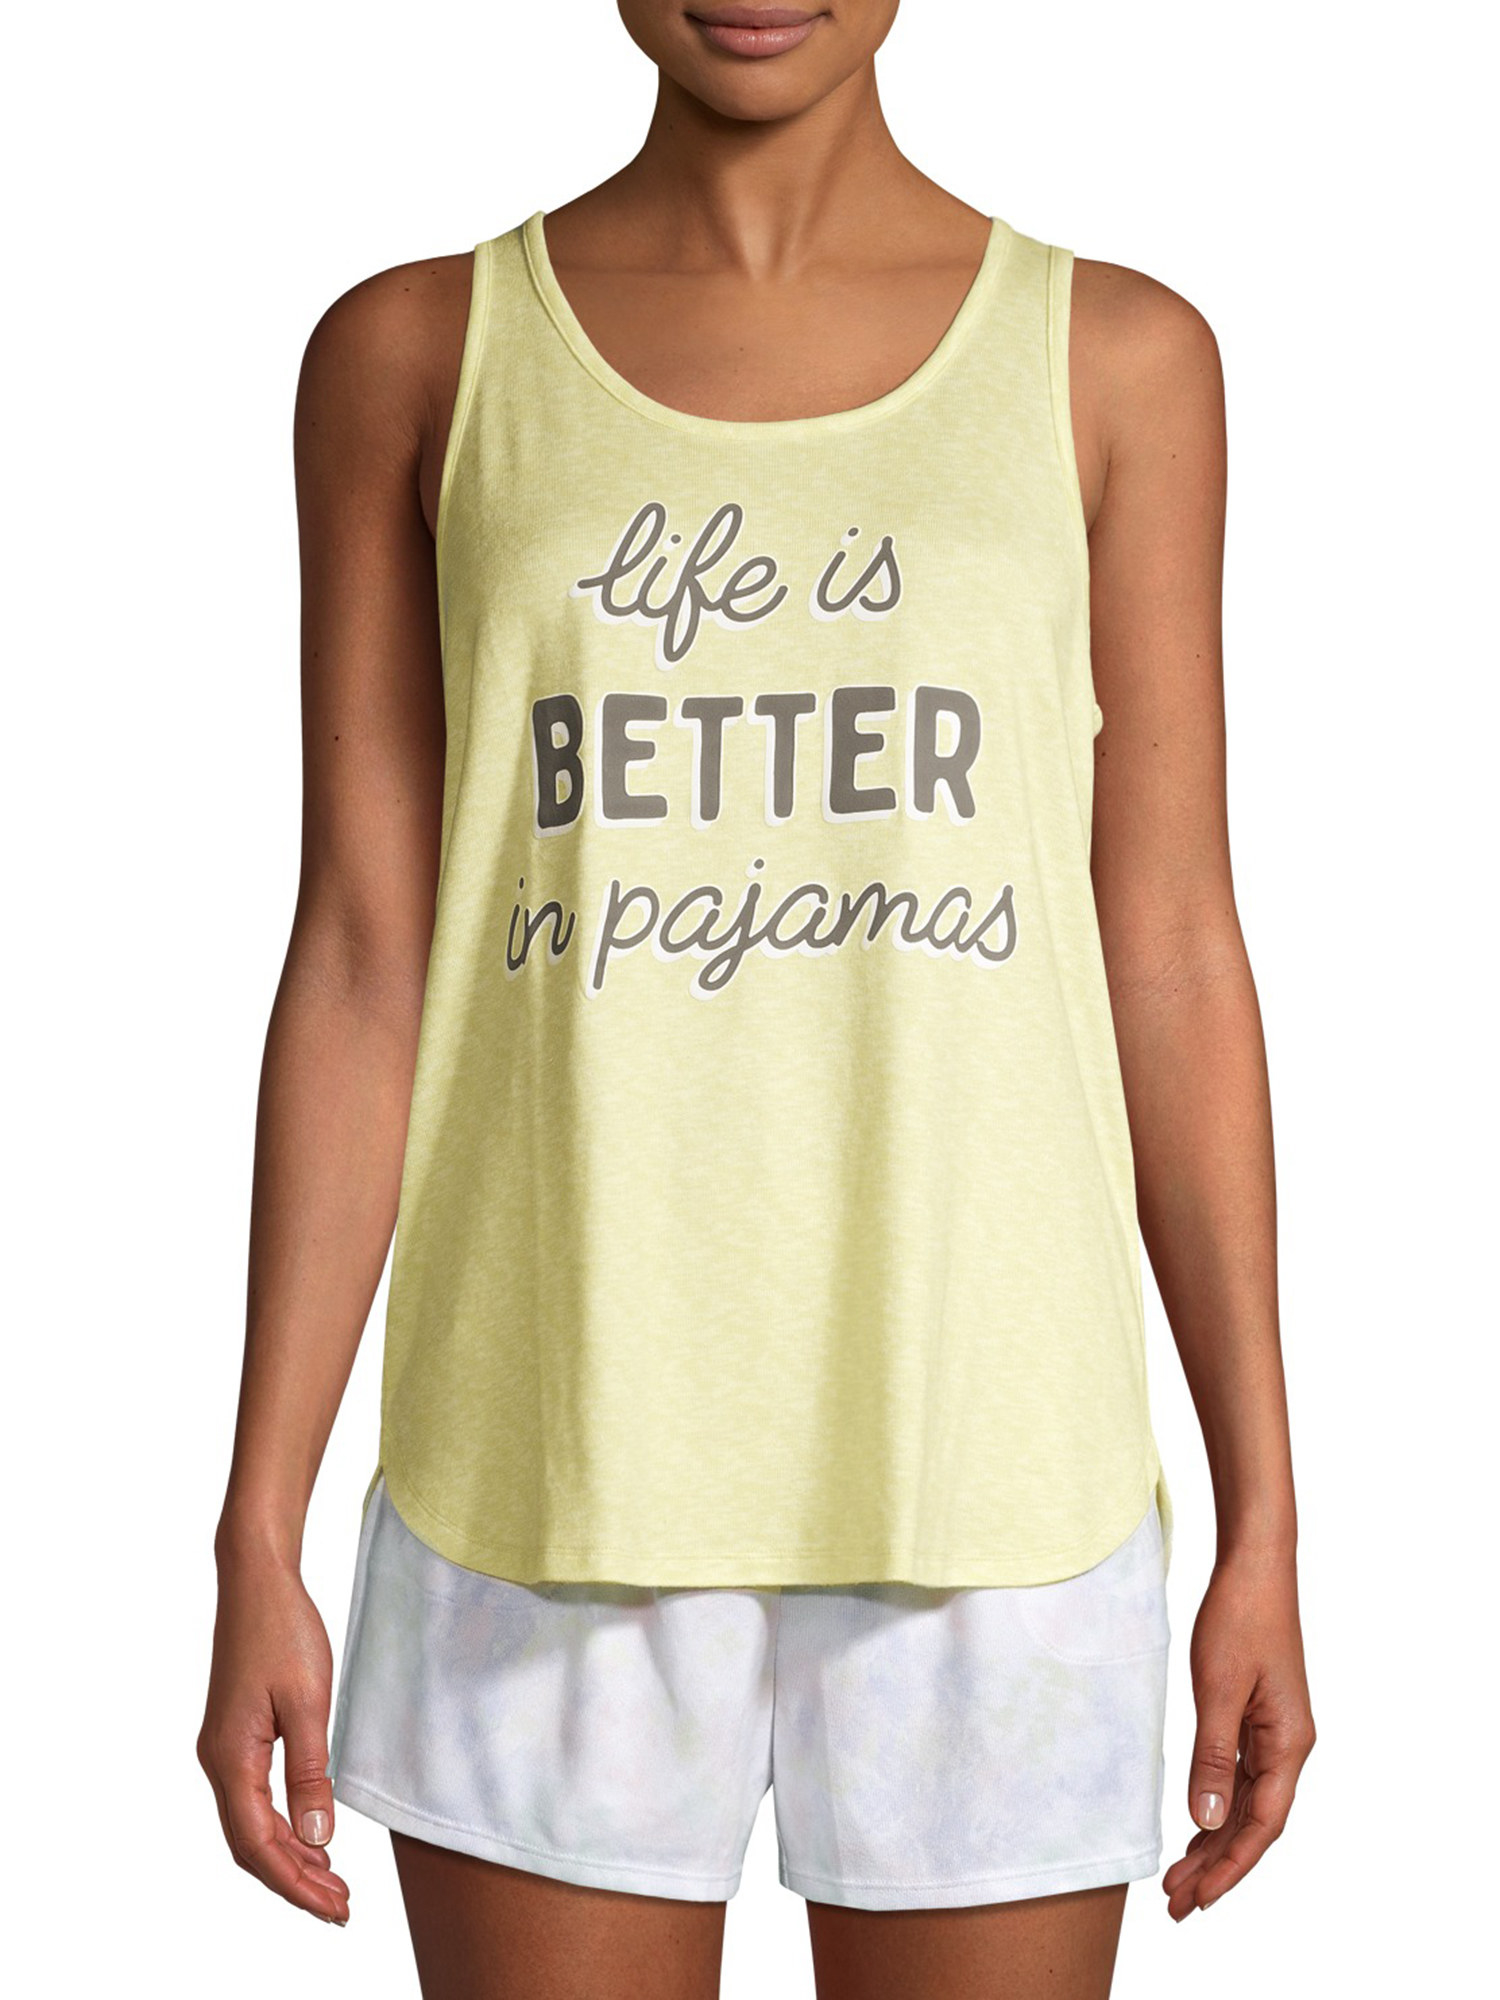 """A model in a yellow tank that says """"life is better in pajamas"""""""